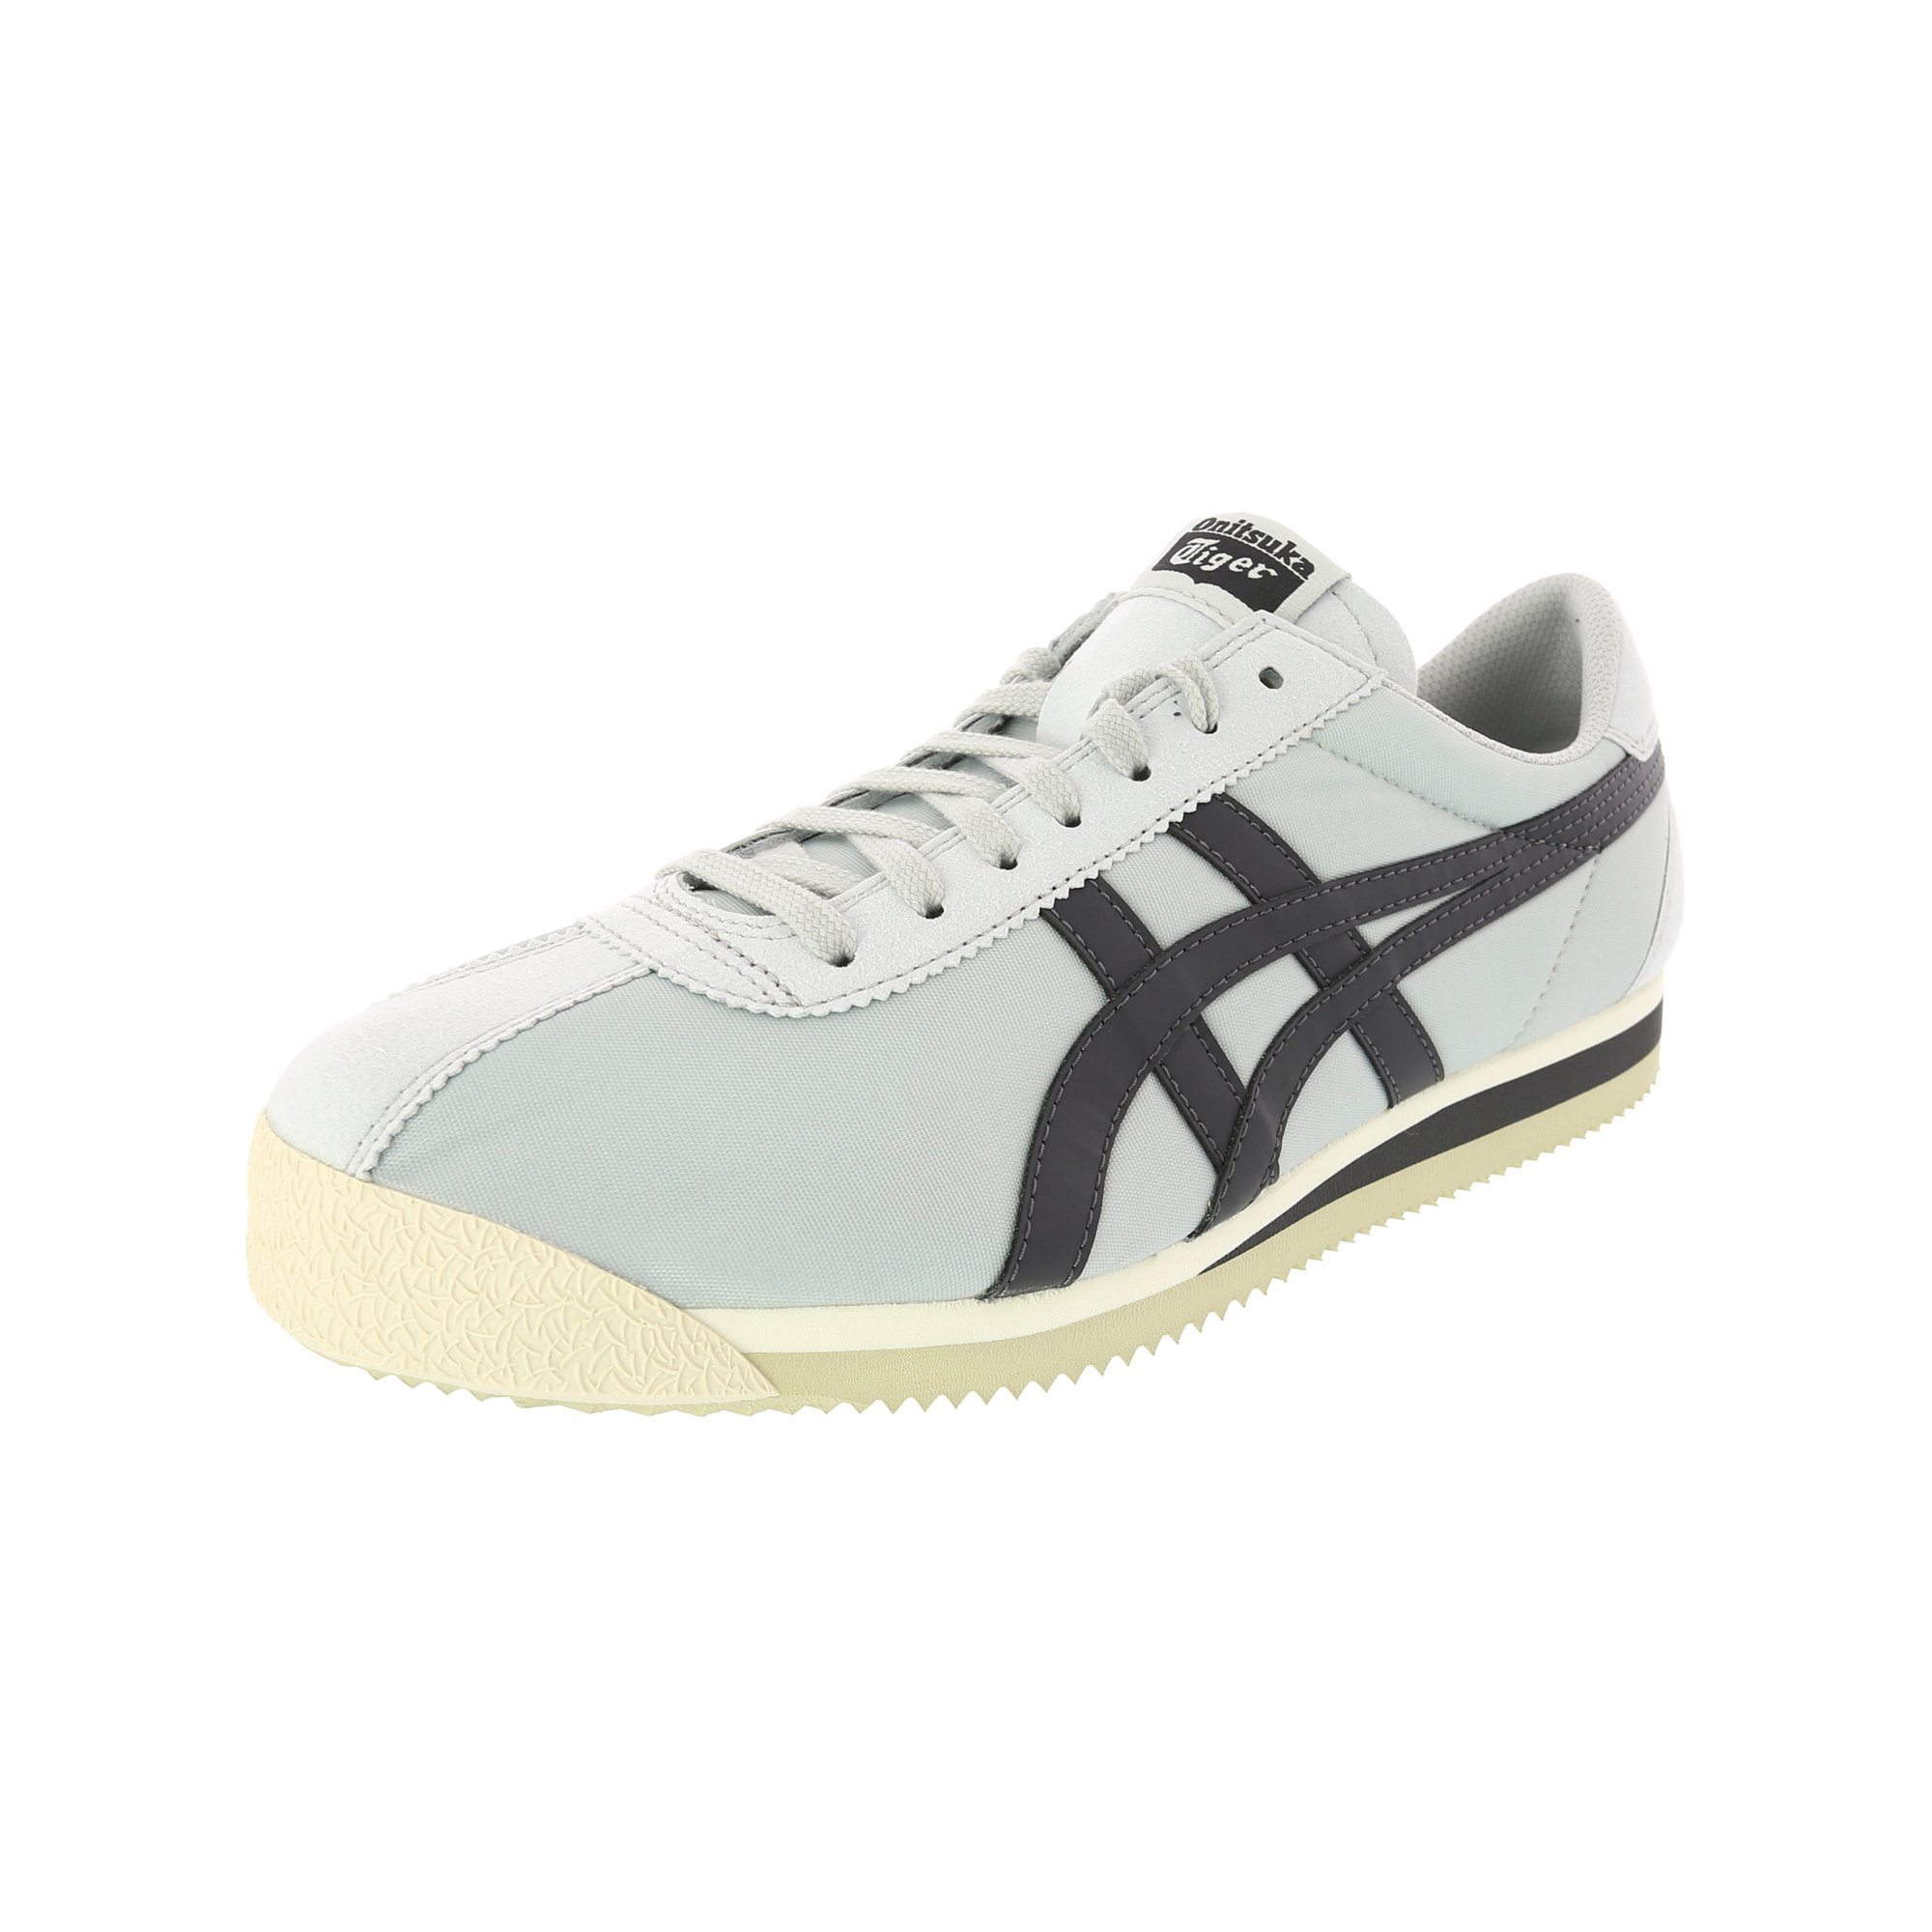 best sneakers c643d 49109 Onitsuka Tiger Men's Corsair Glacier Grey / Dark Ankle-High Fashion Sneaker  - 10.5M